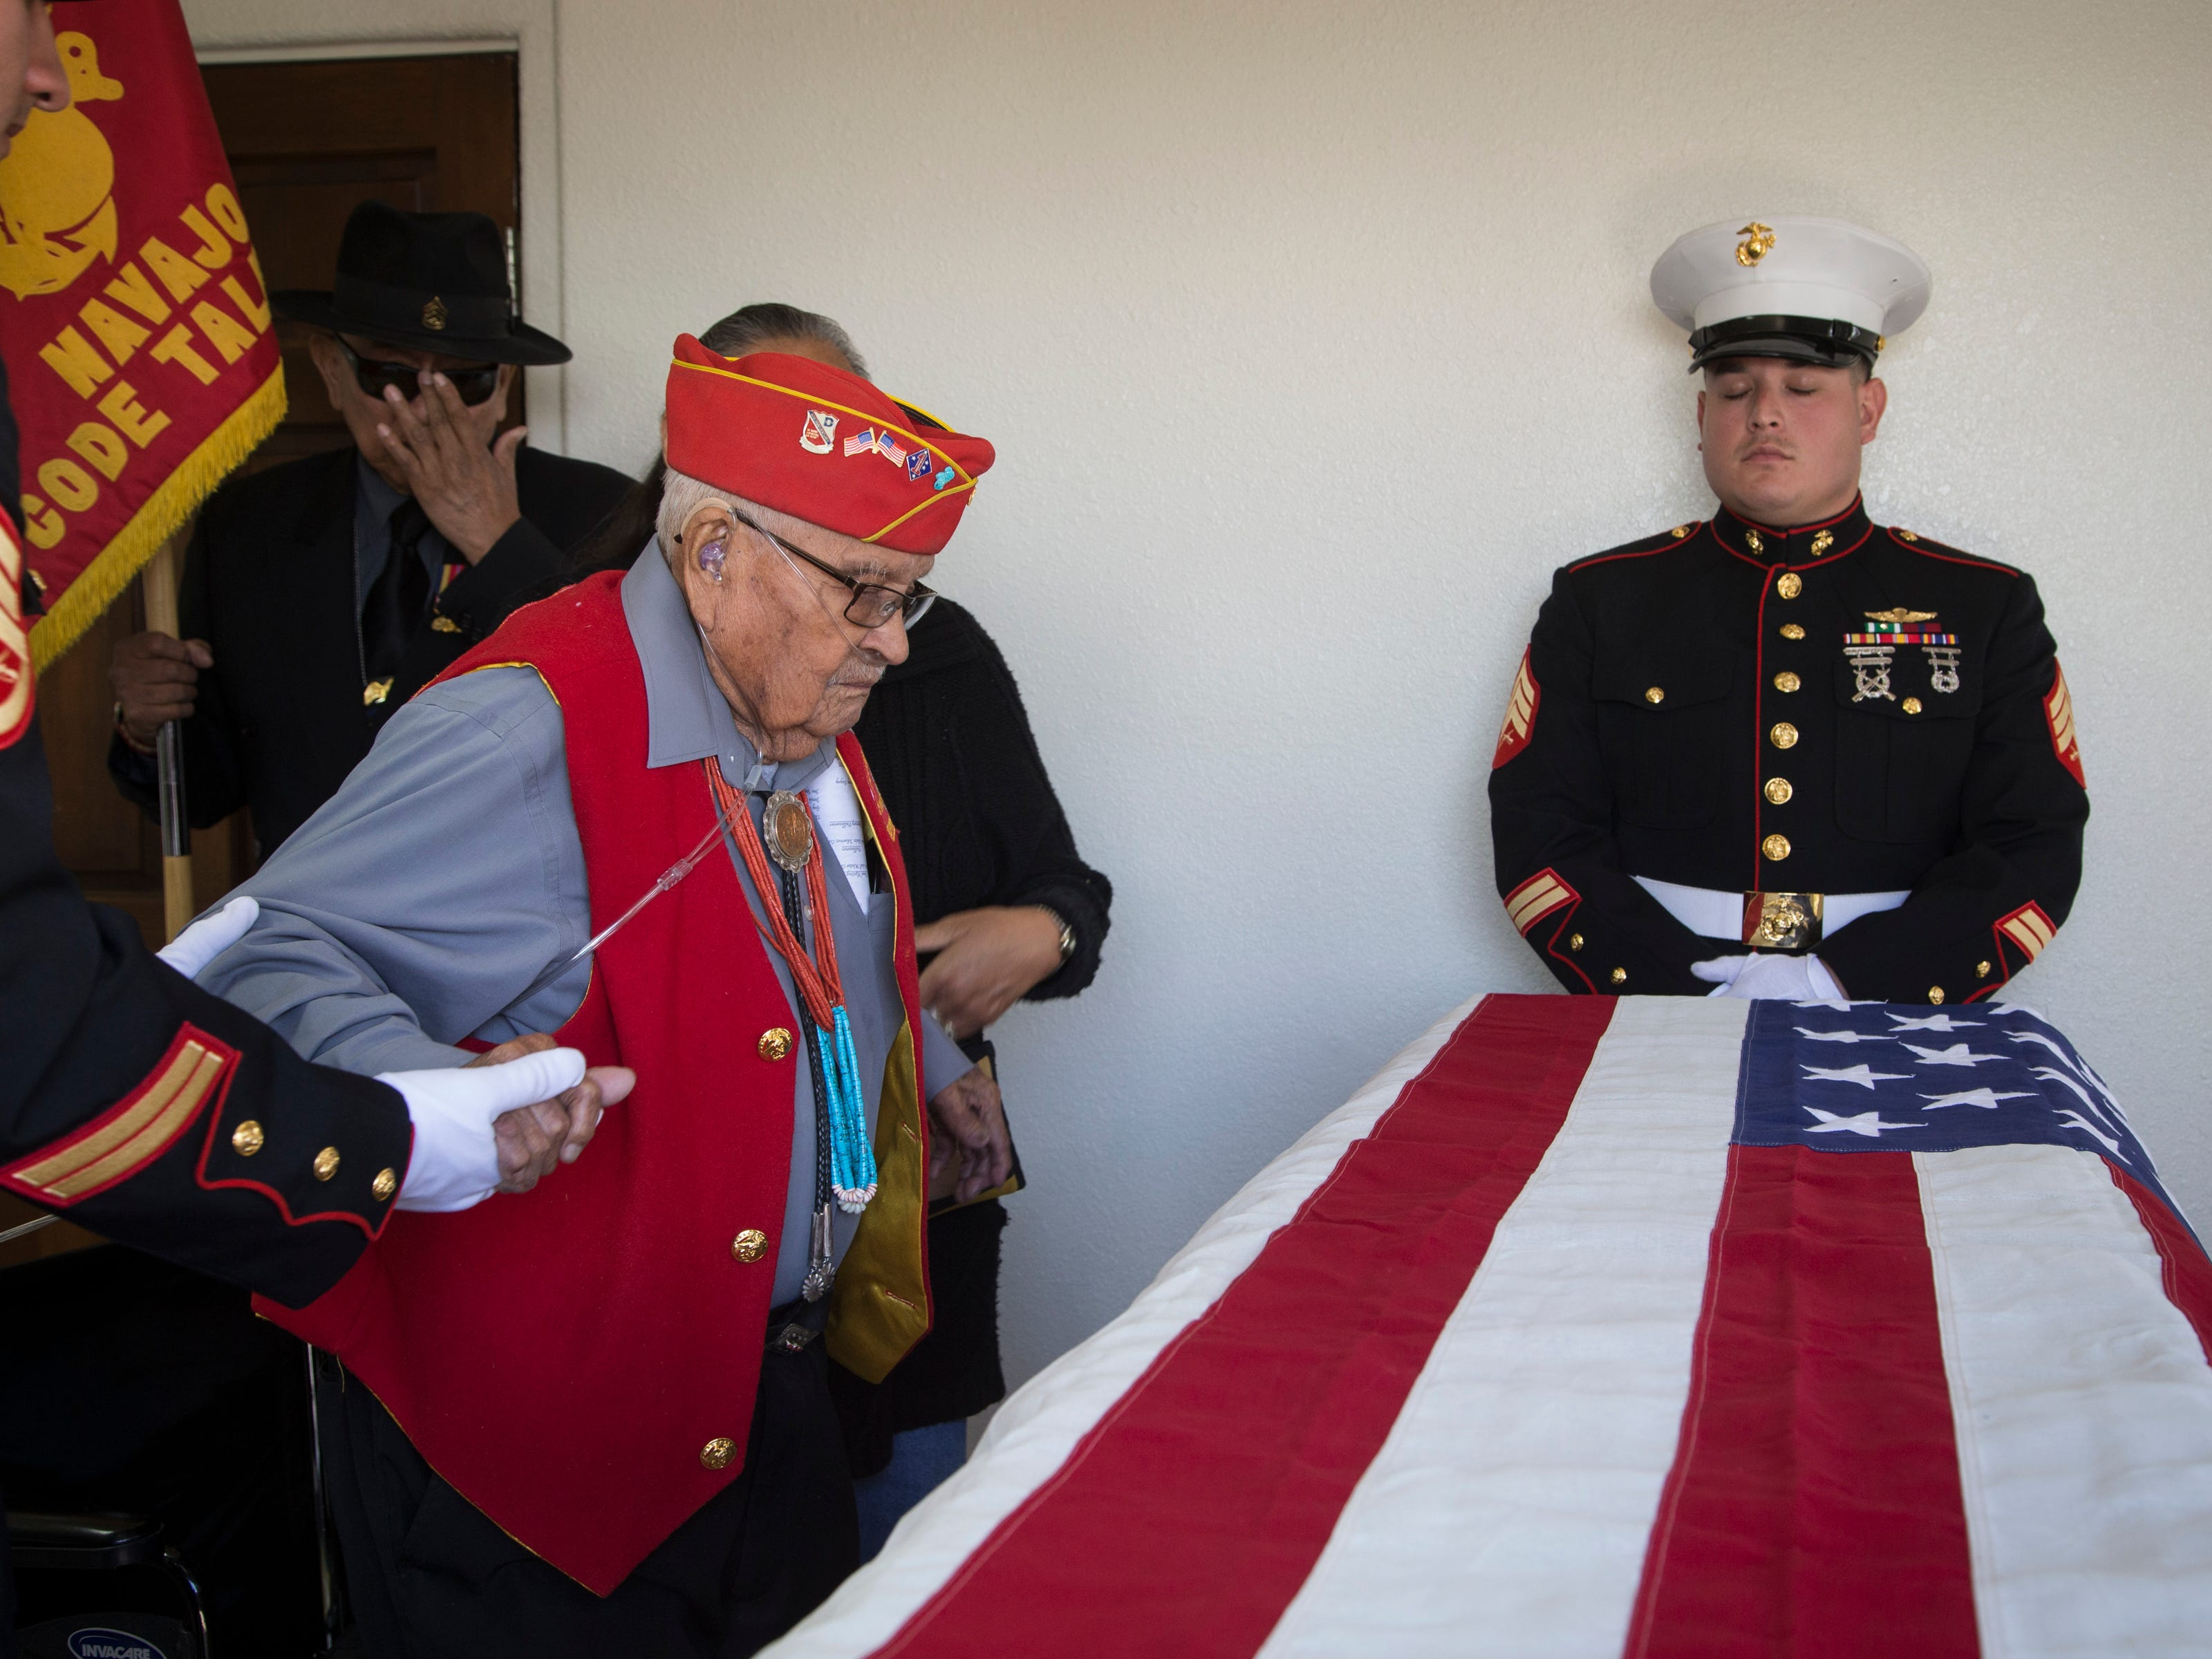 Navajo Code Talker Sam Sandoval (left) pays final respects to Navajo Code Talker Fleming Begaye Sr. on May 17, 2019, at the Potter's House Christian Center in Chinle, Ariz.